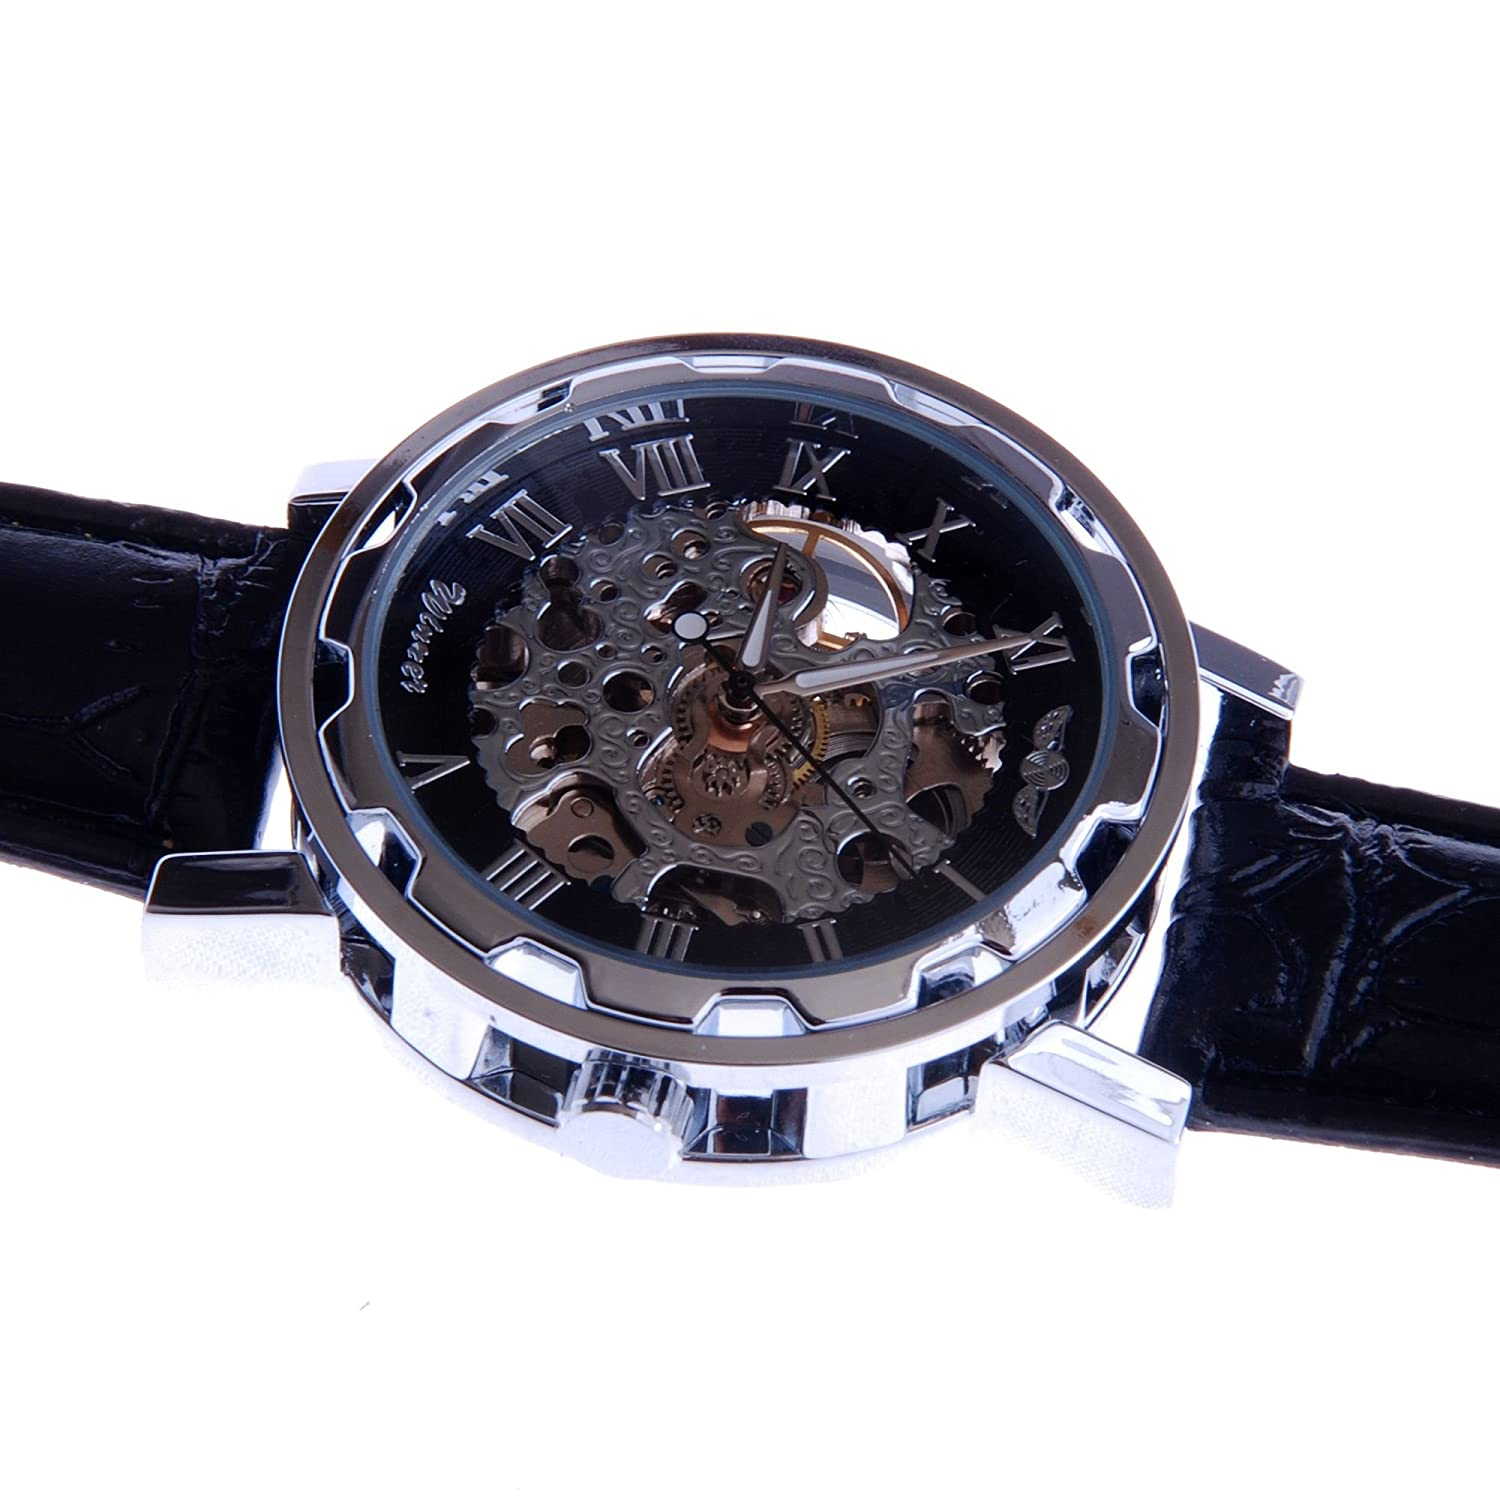 Amazon.com: Mens Automatic Skeleton Wrist Watch Silver Dial Black Leather Strap Self Winding AMW-37: Watches